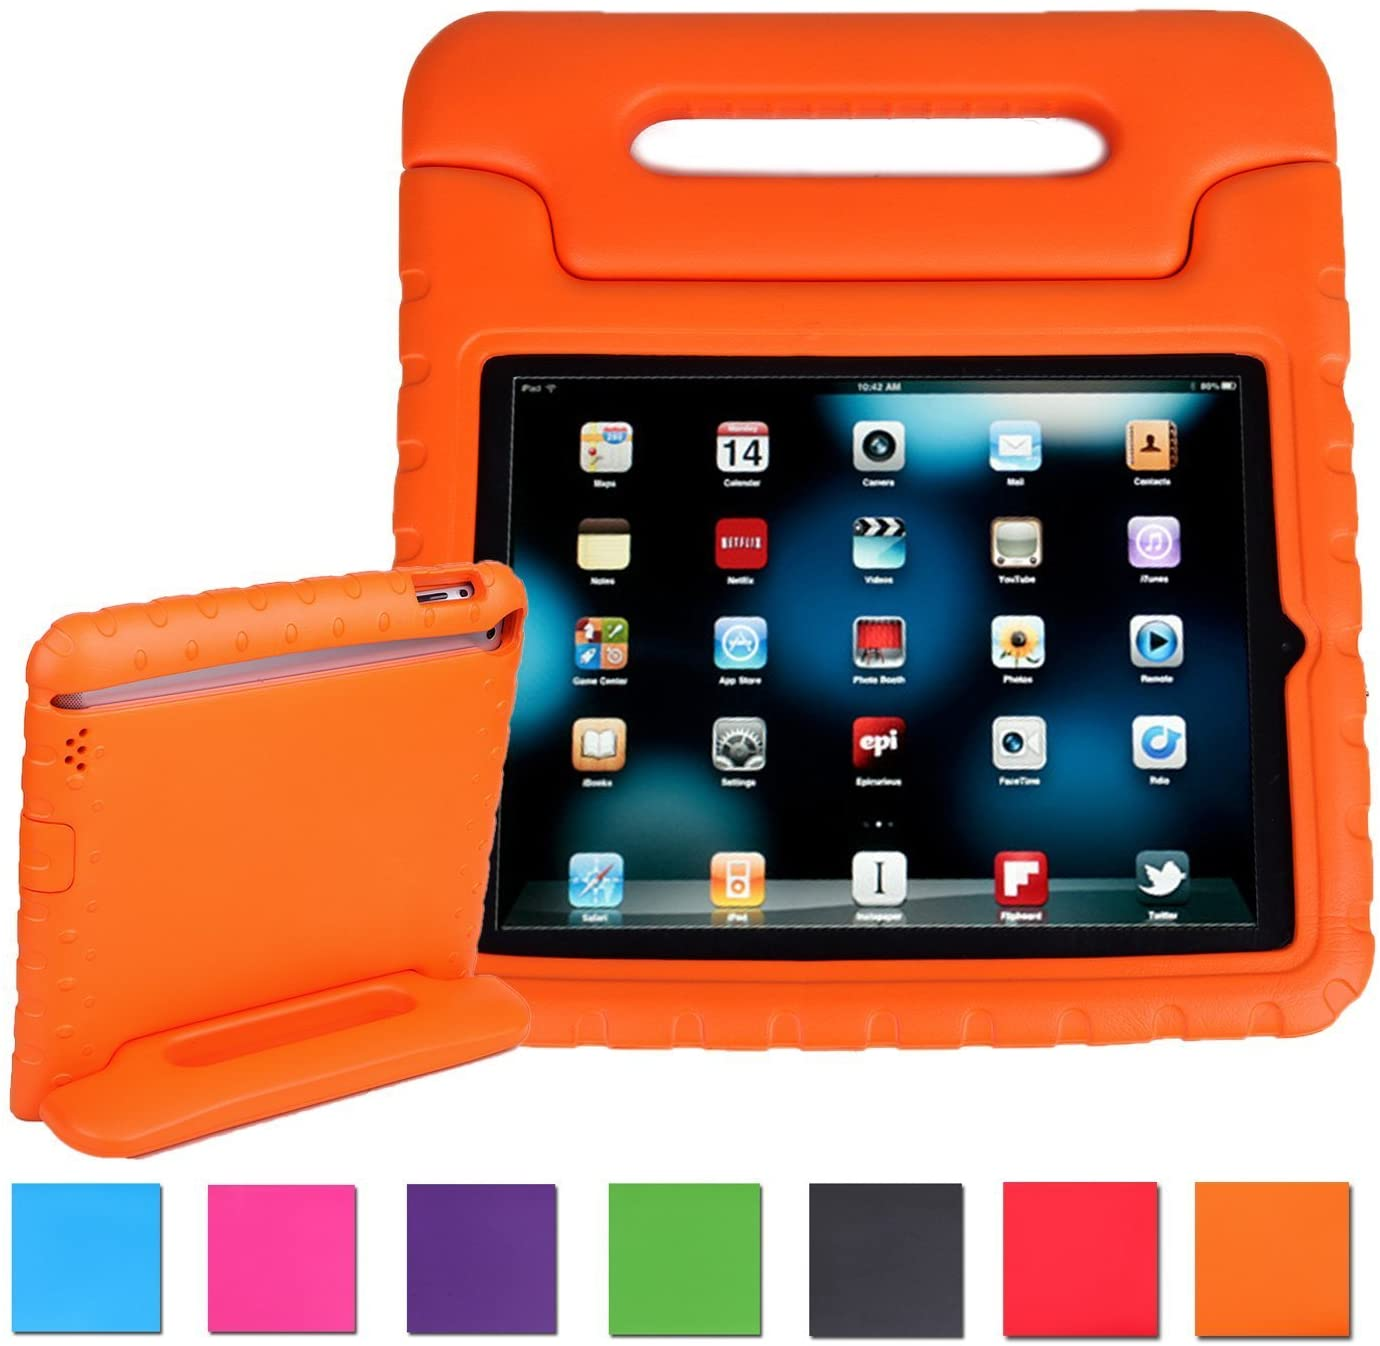 AGRIGLE iPad Mini Case,[Kids Series] Shock Proof Convertible Handle Light Weight Super Protective Stand Cover Case for Apple iPad Mini/Mini 2/Mini 3 (Orange)